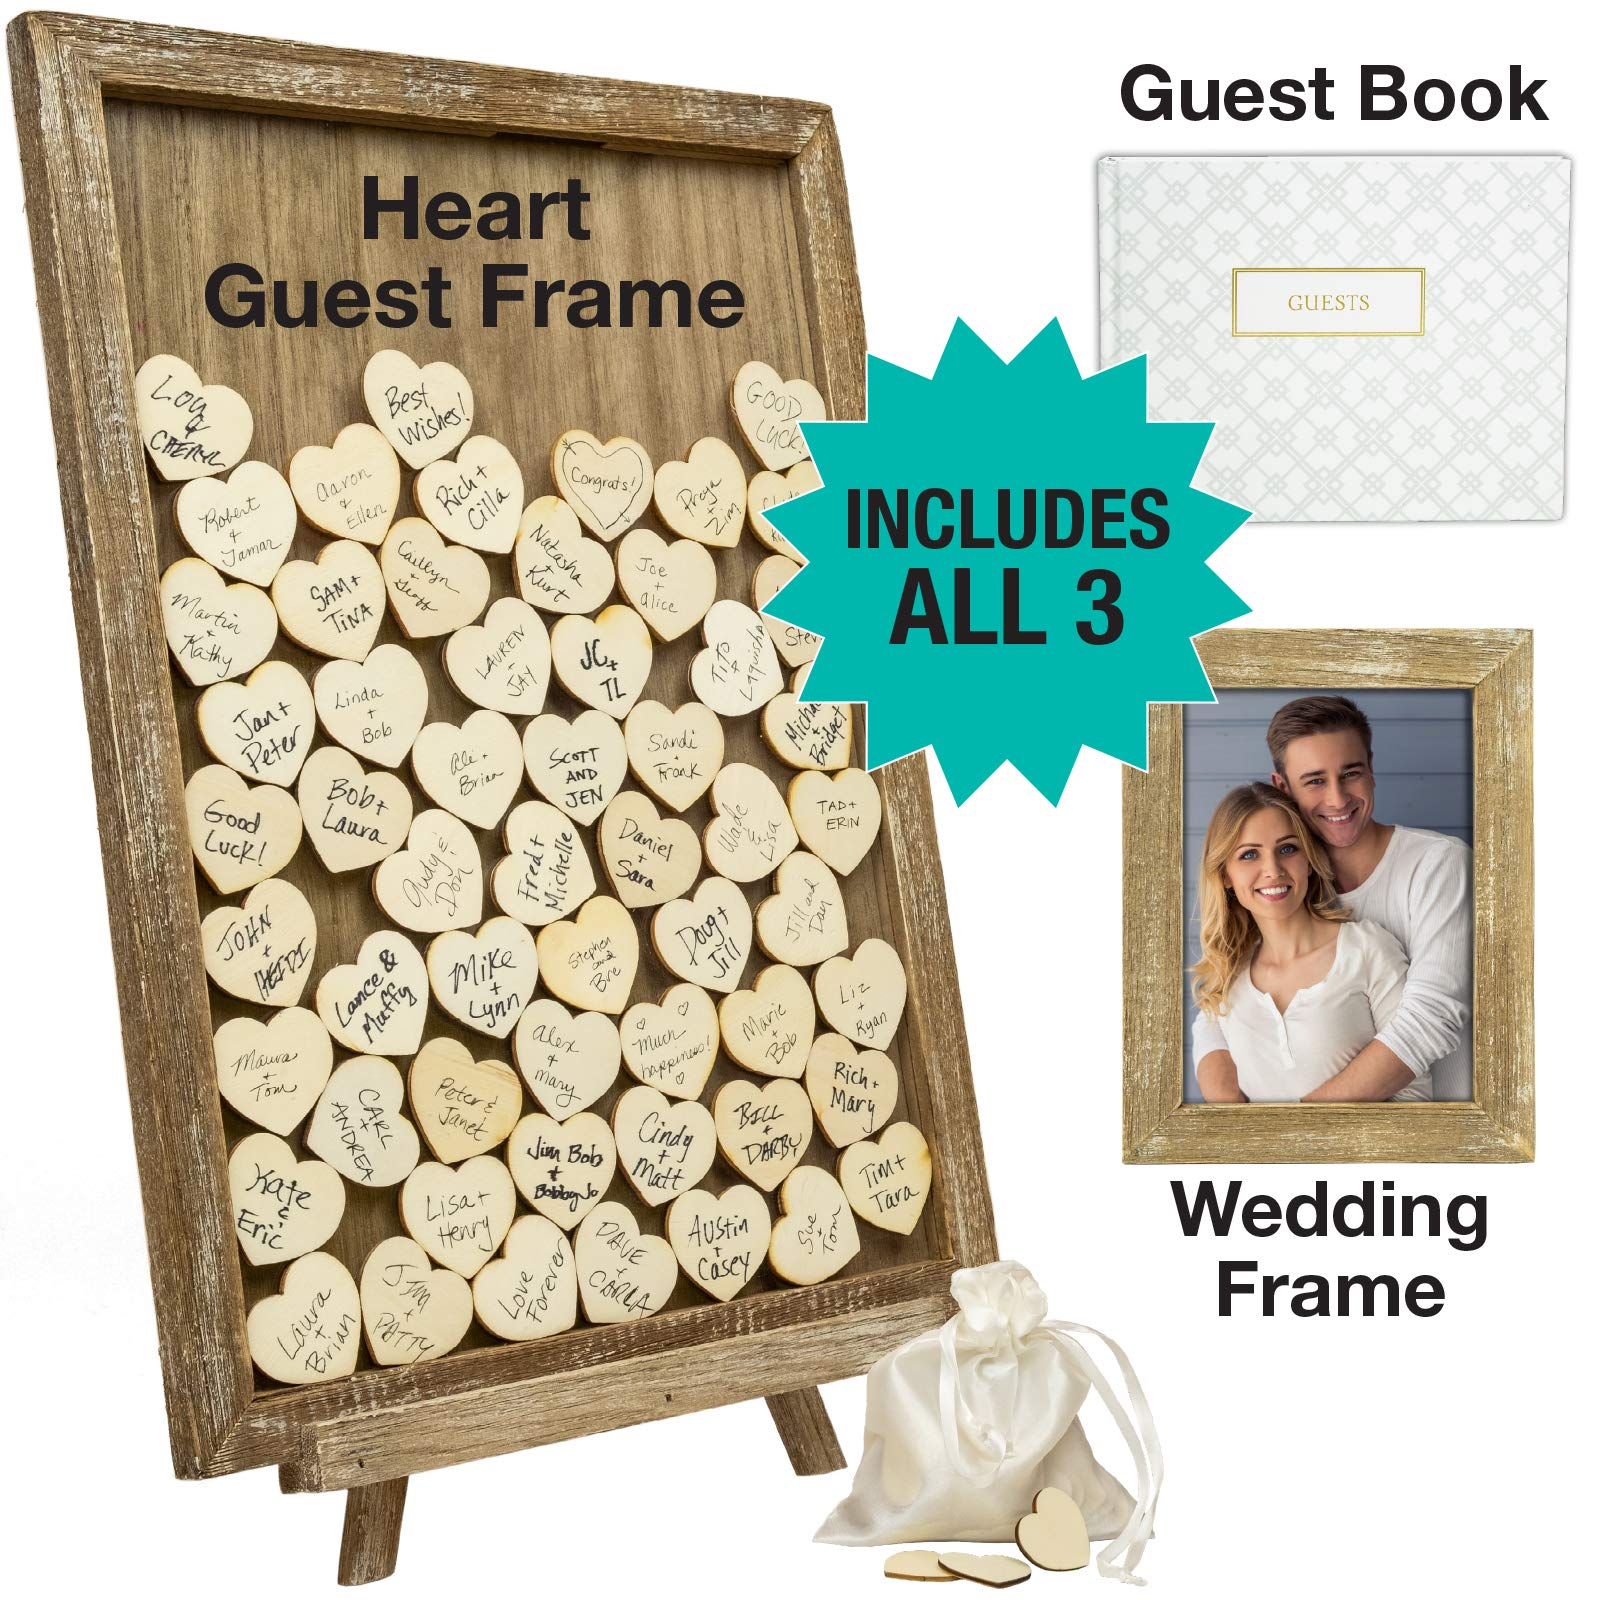 Wedding Guest Drop Top Frame Wedding Guest Book Alternative with 70 Blank Wooden Hearts, a Traditional Guest Book, Picture Frame, and Display Easel (Rustic Brown Wood)